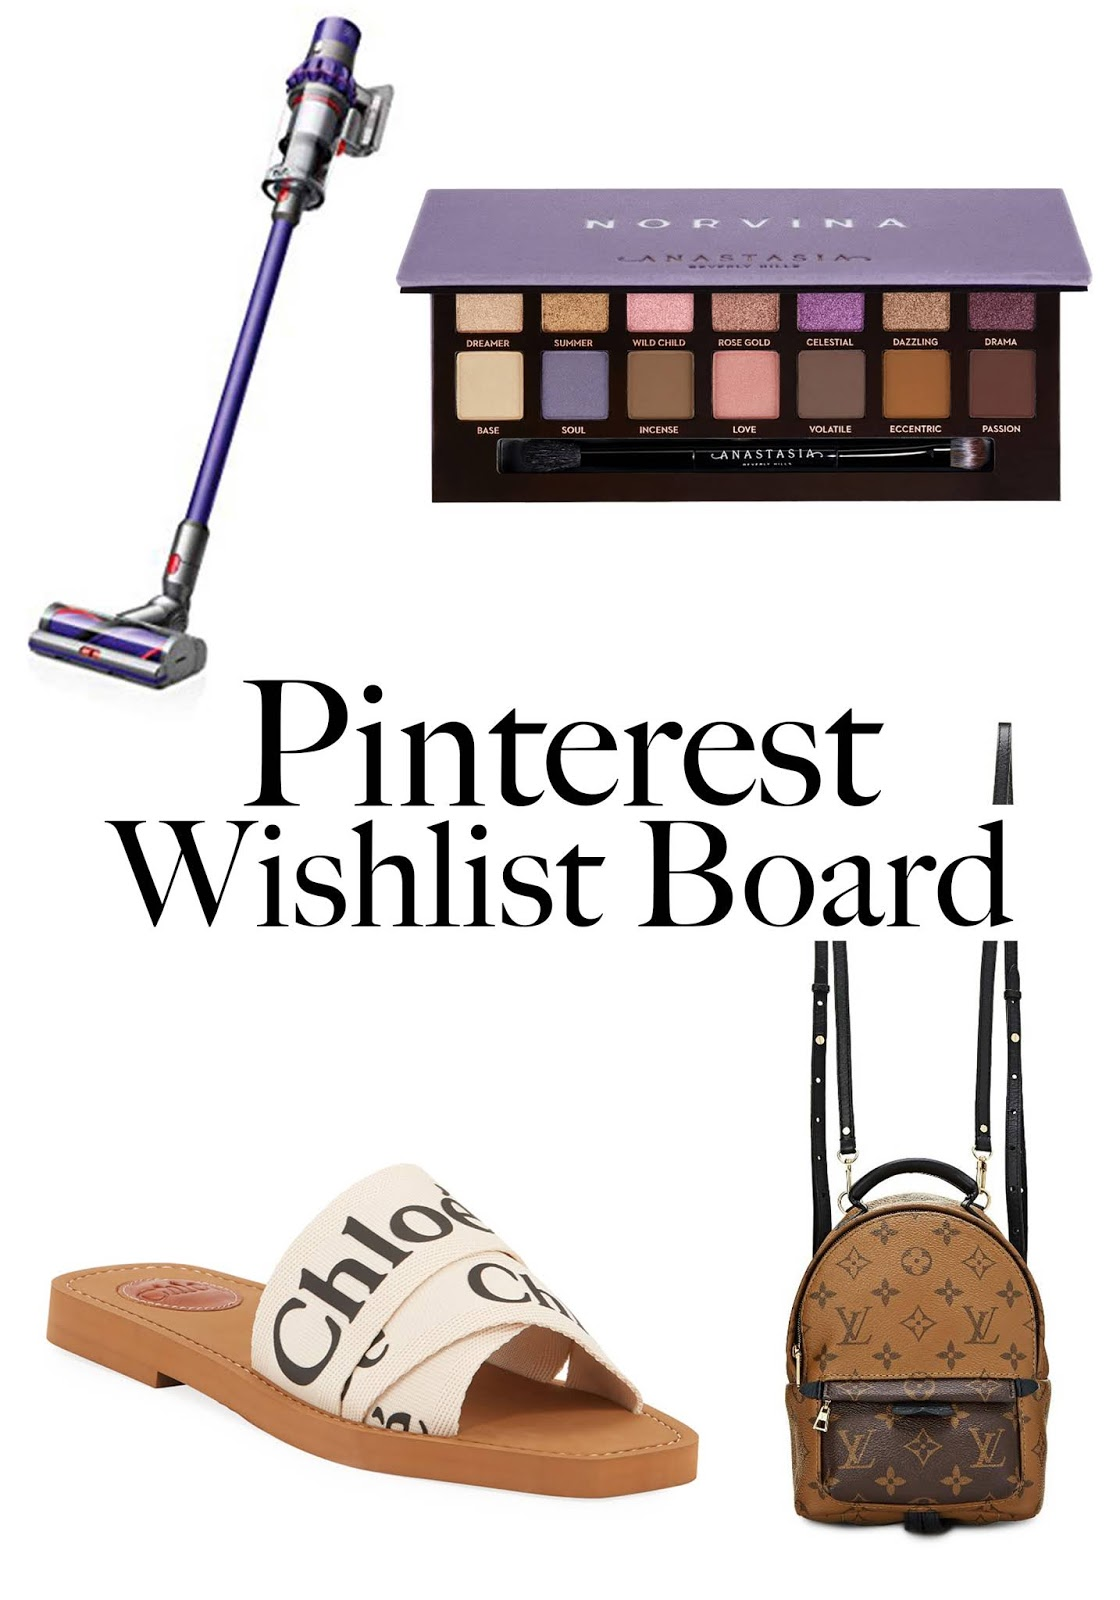 Update: Pinterest Wishlist Board